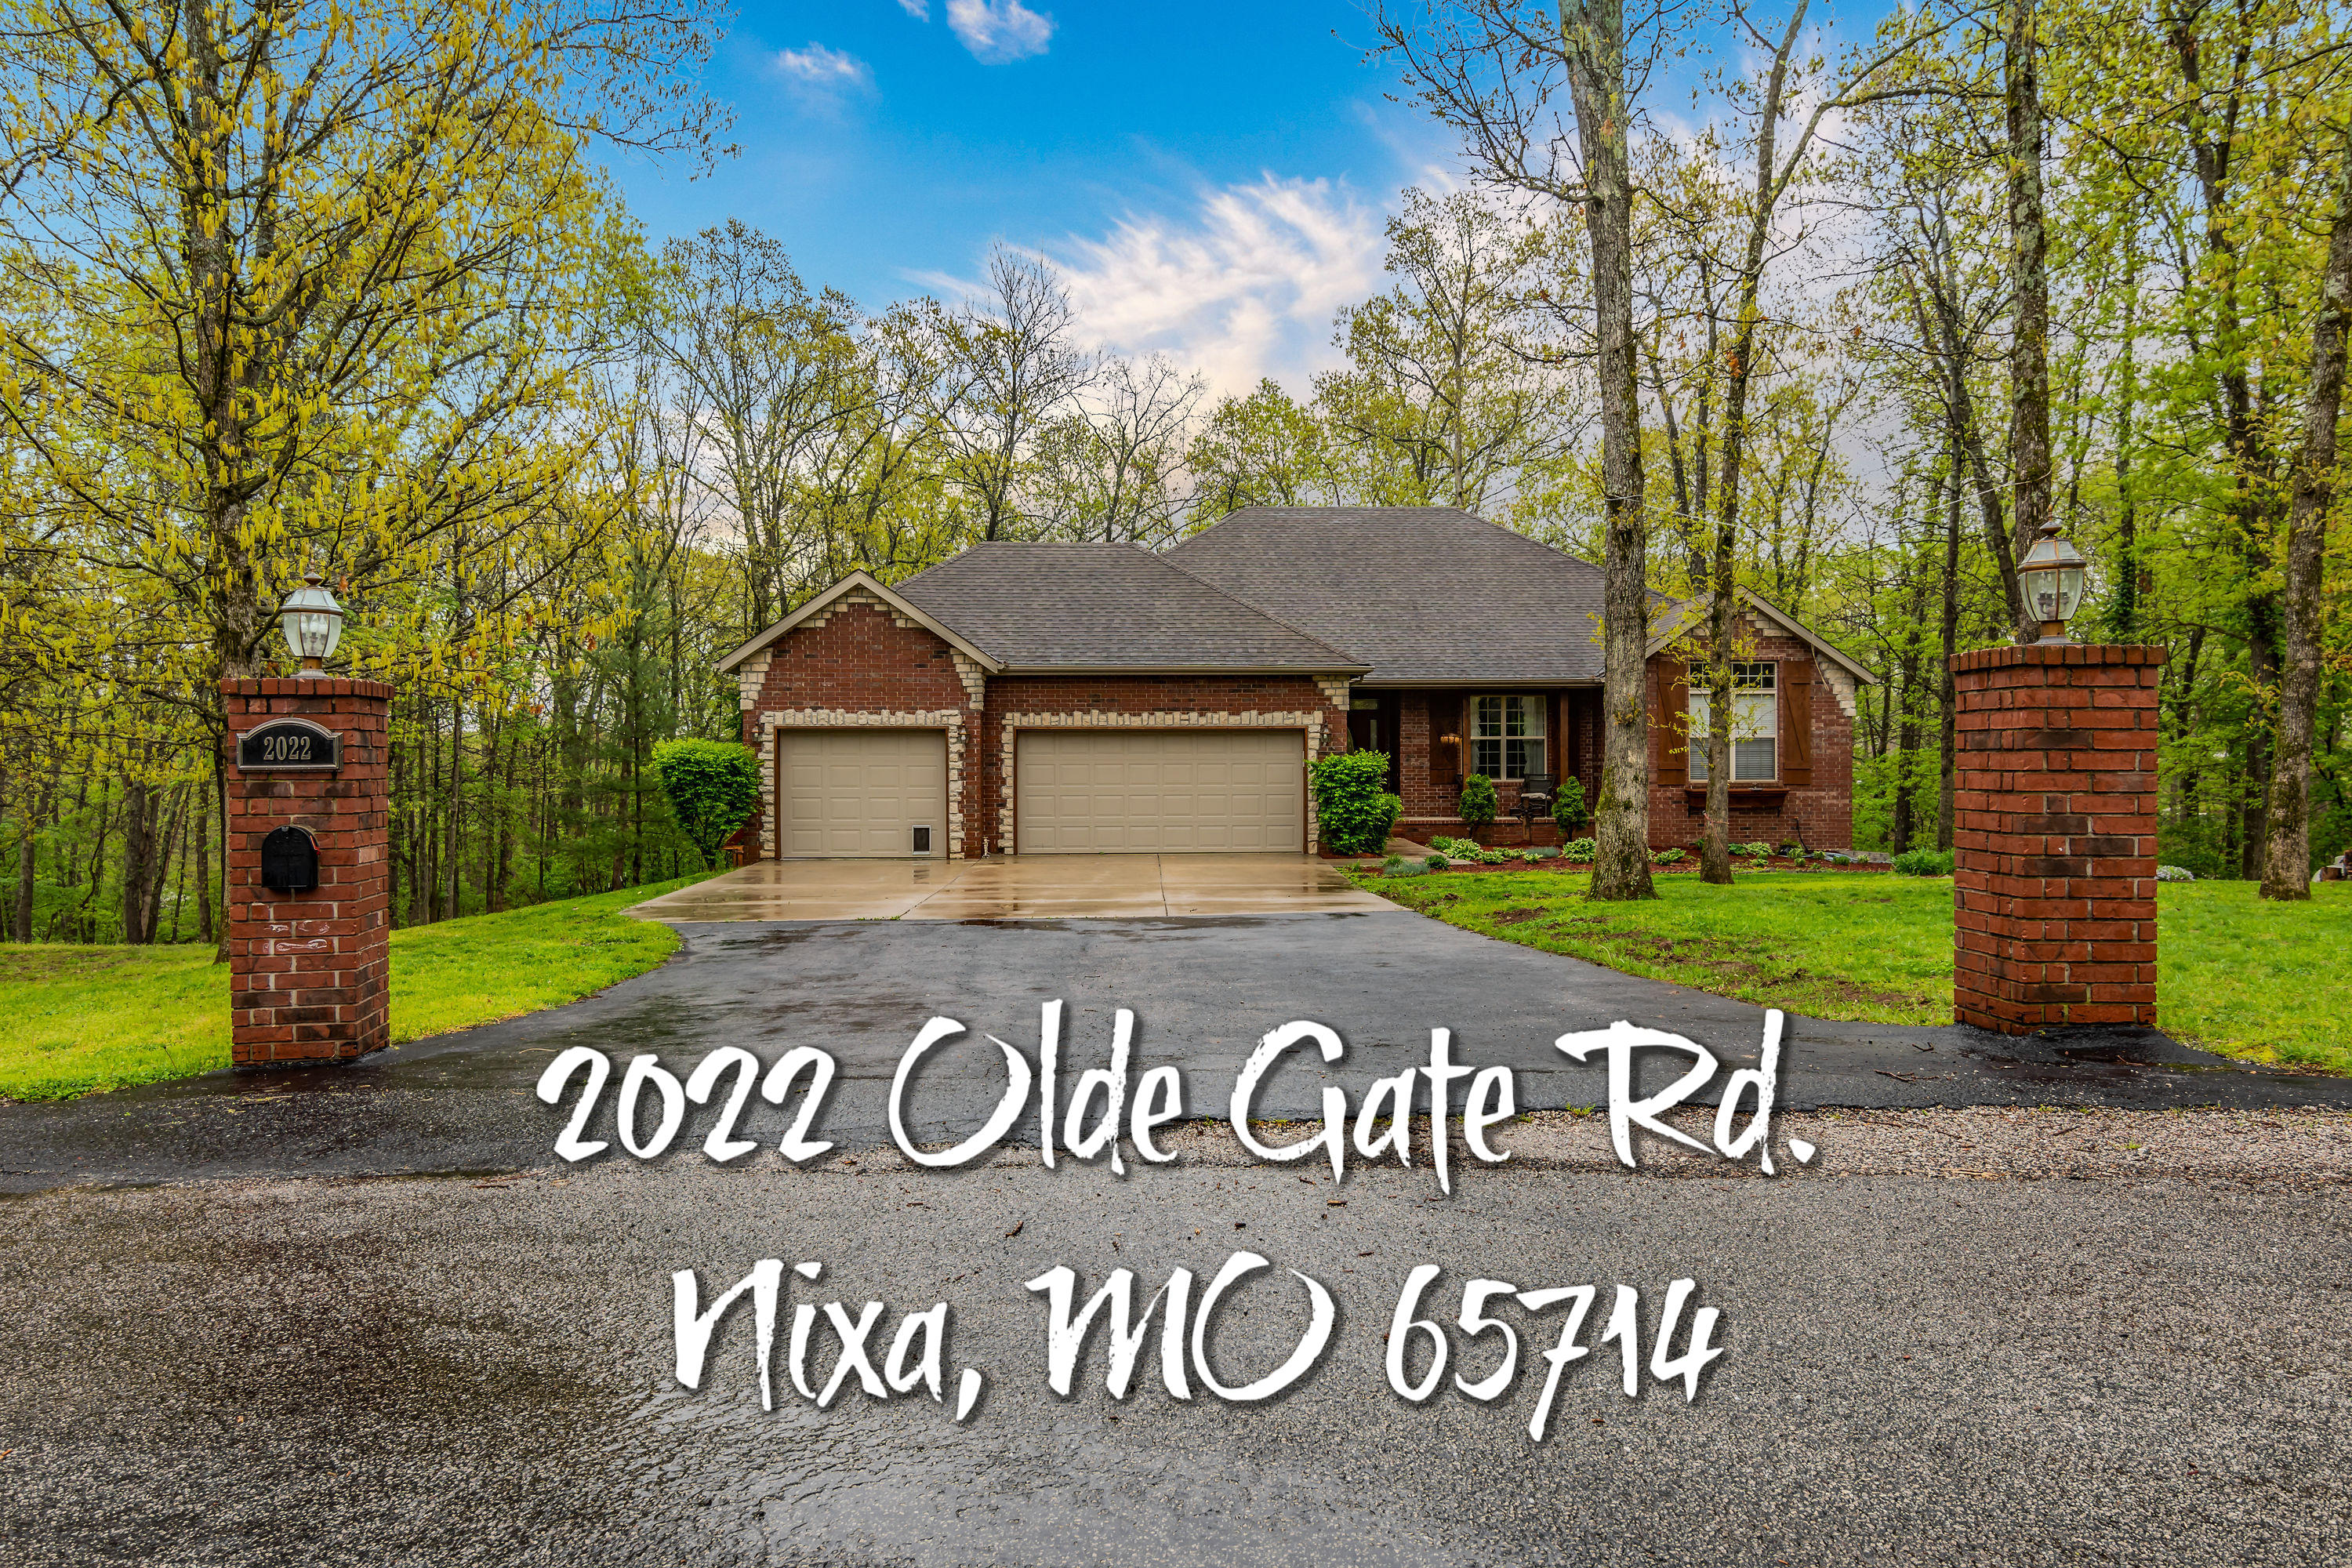 2022 Olde Gate Road Nixa, MO 65714